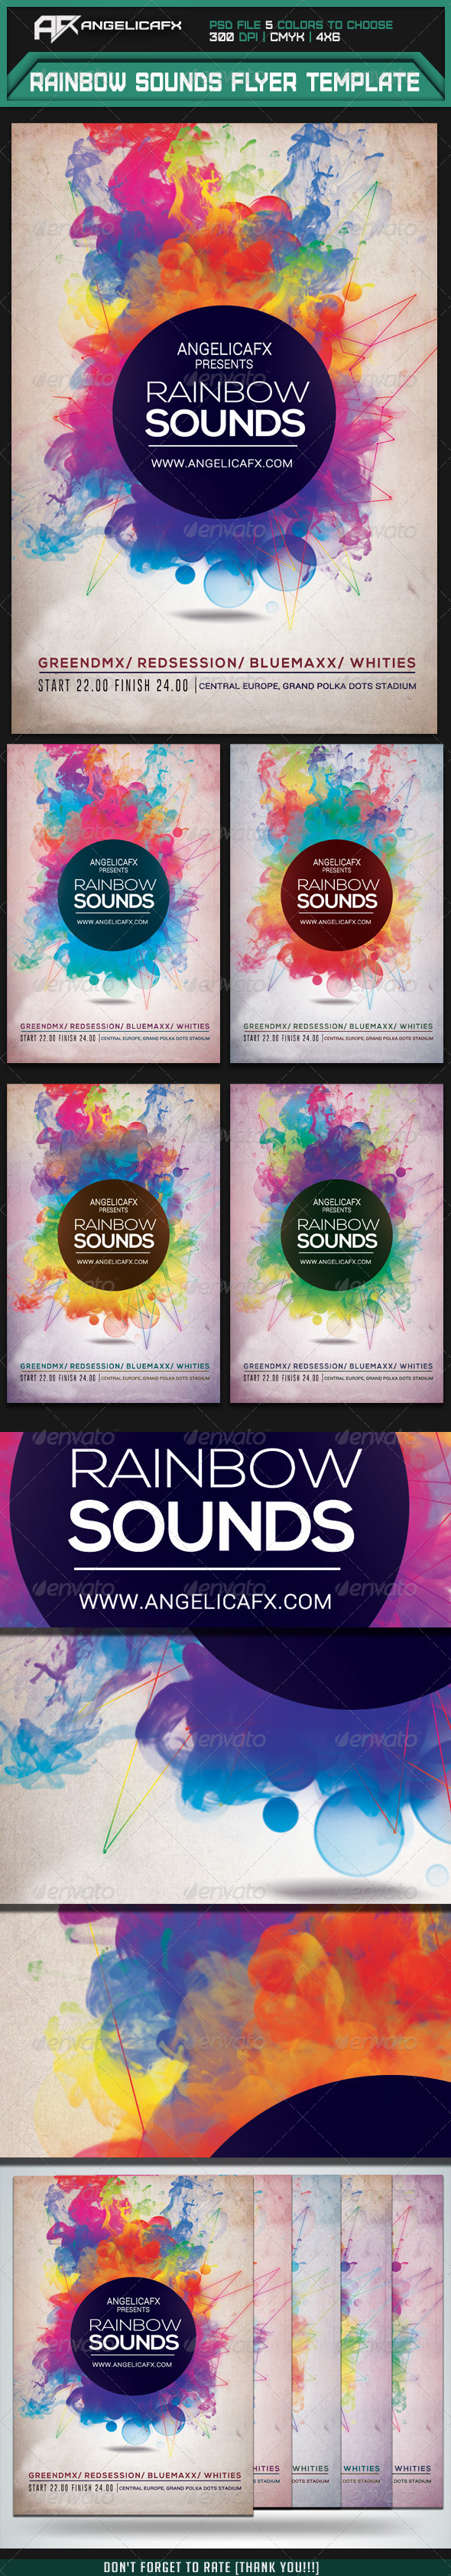 GraphicRiver Rainbow Sounds Flyer Template 7333824